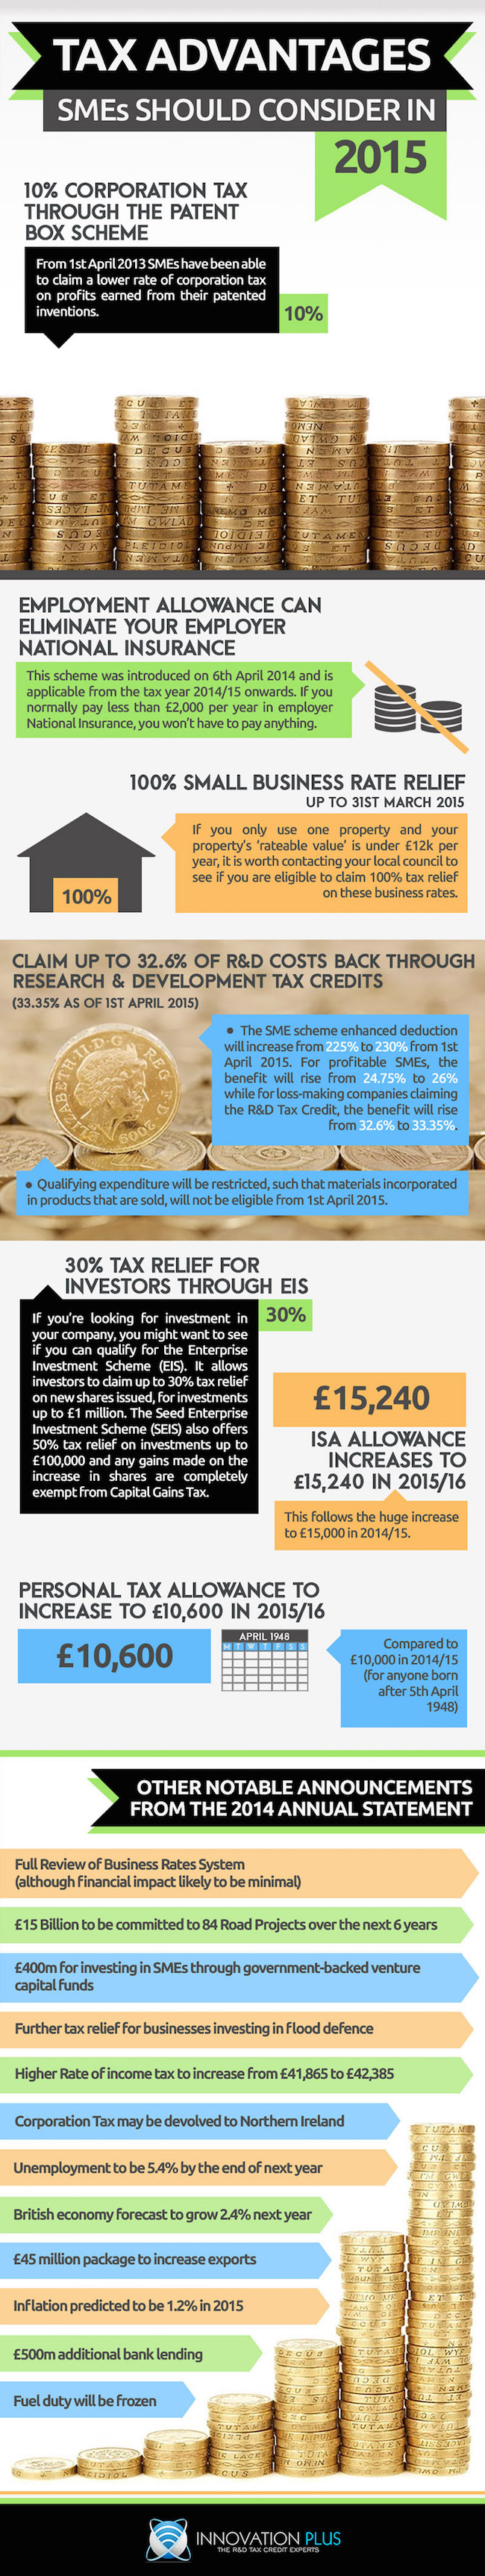 Tax-advantages-for-SMEs